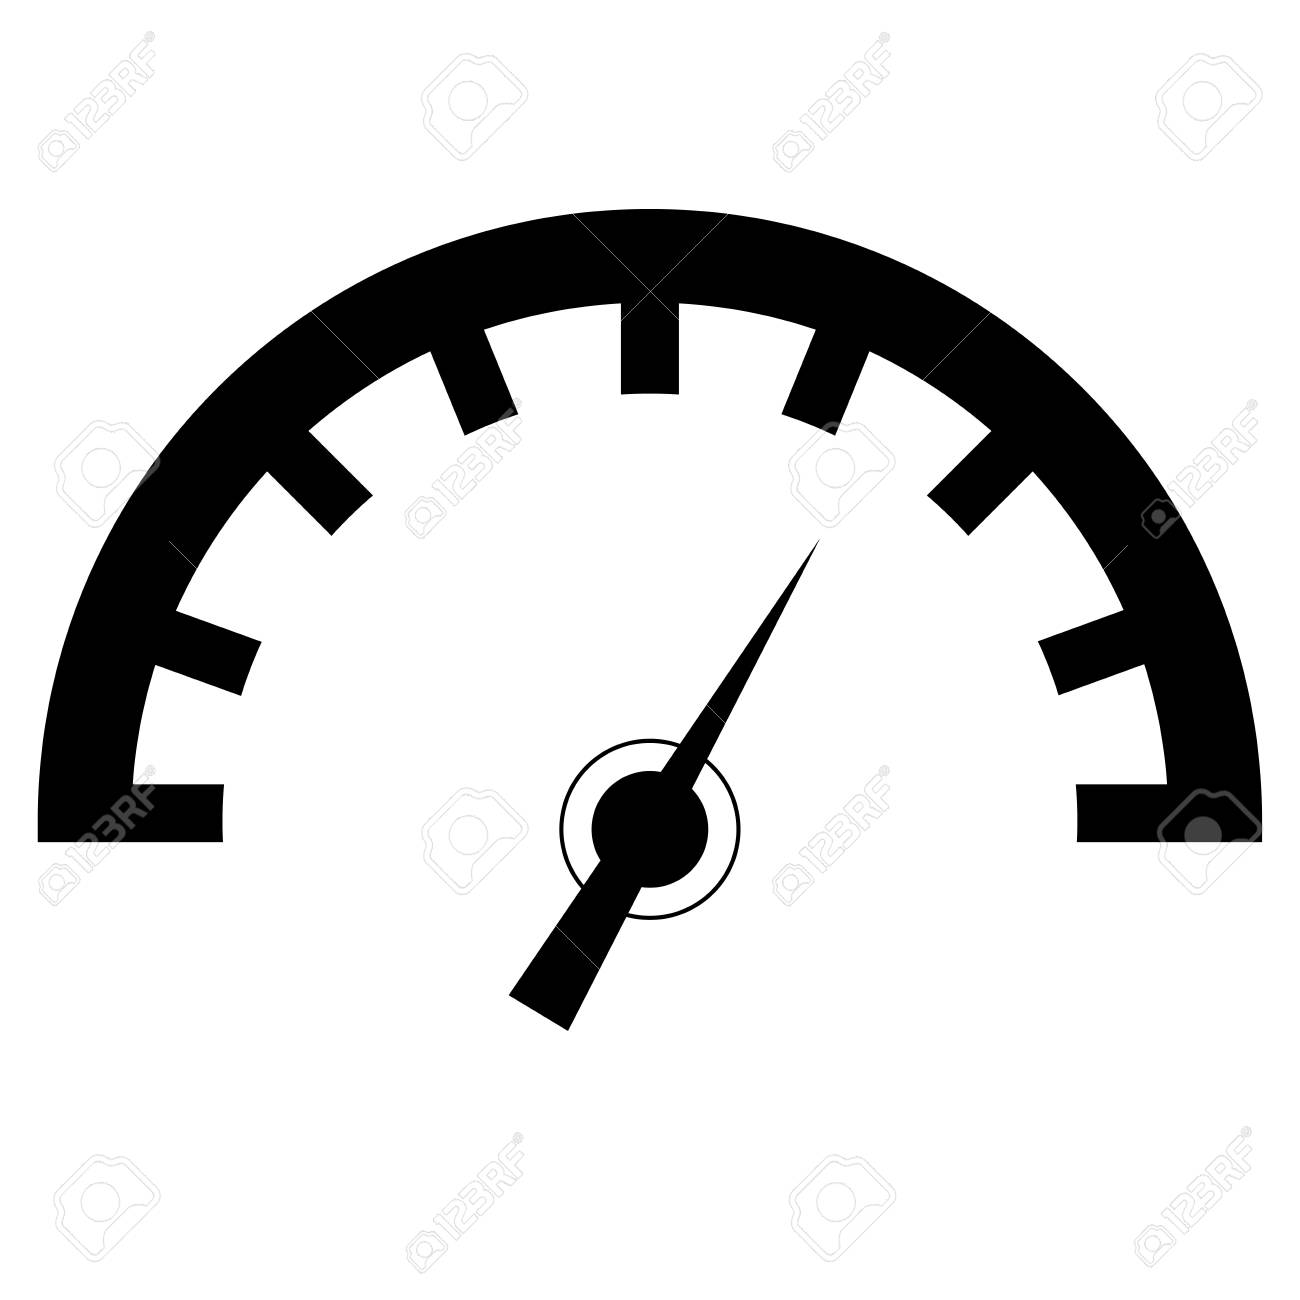 speedometer icon or sign isolated vector on white background rh 123rf com speedometer vector logo speedometer vector free download